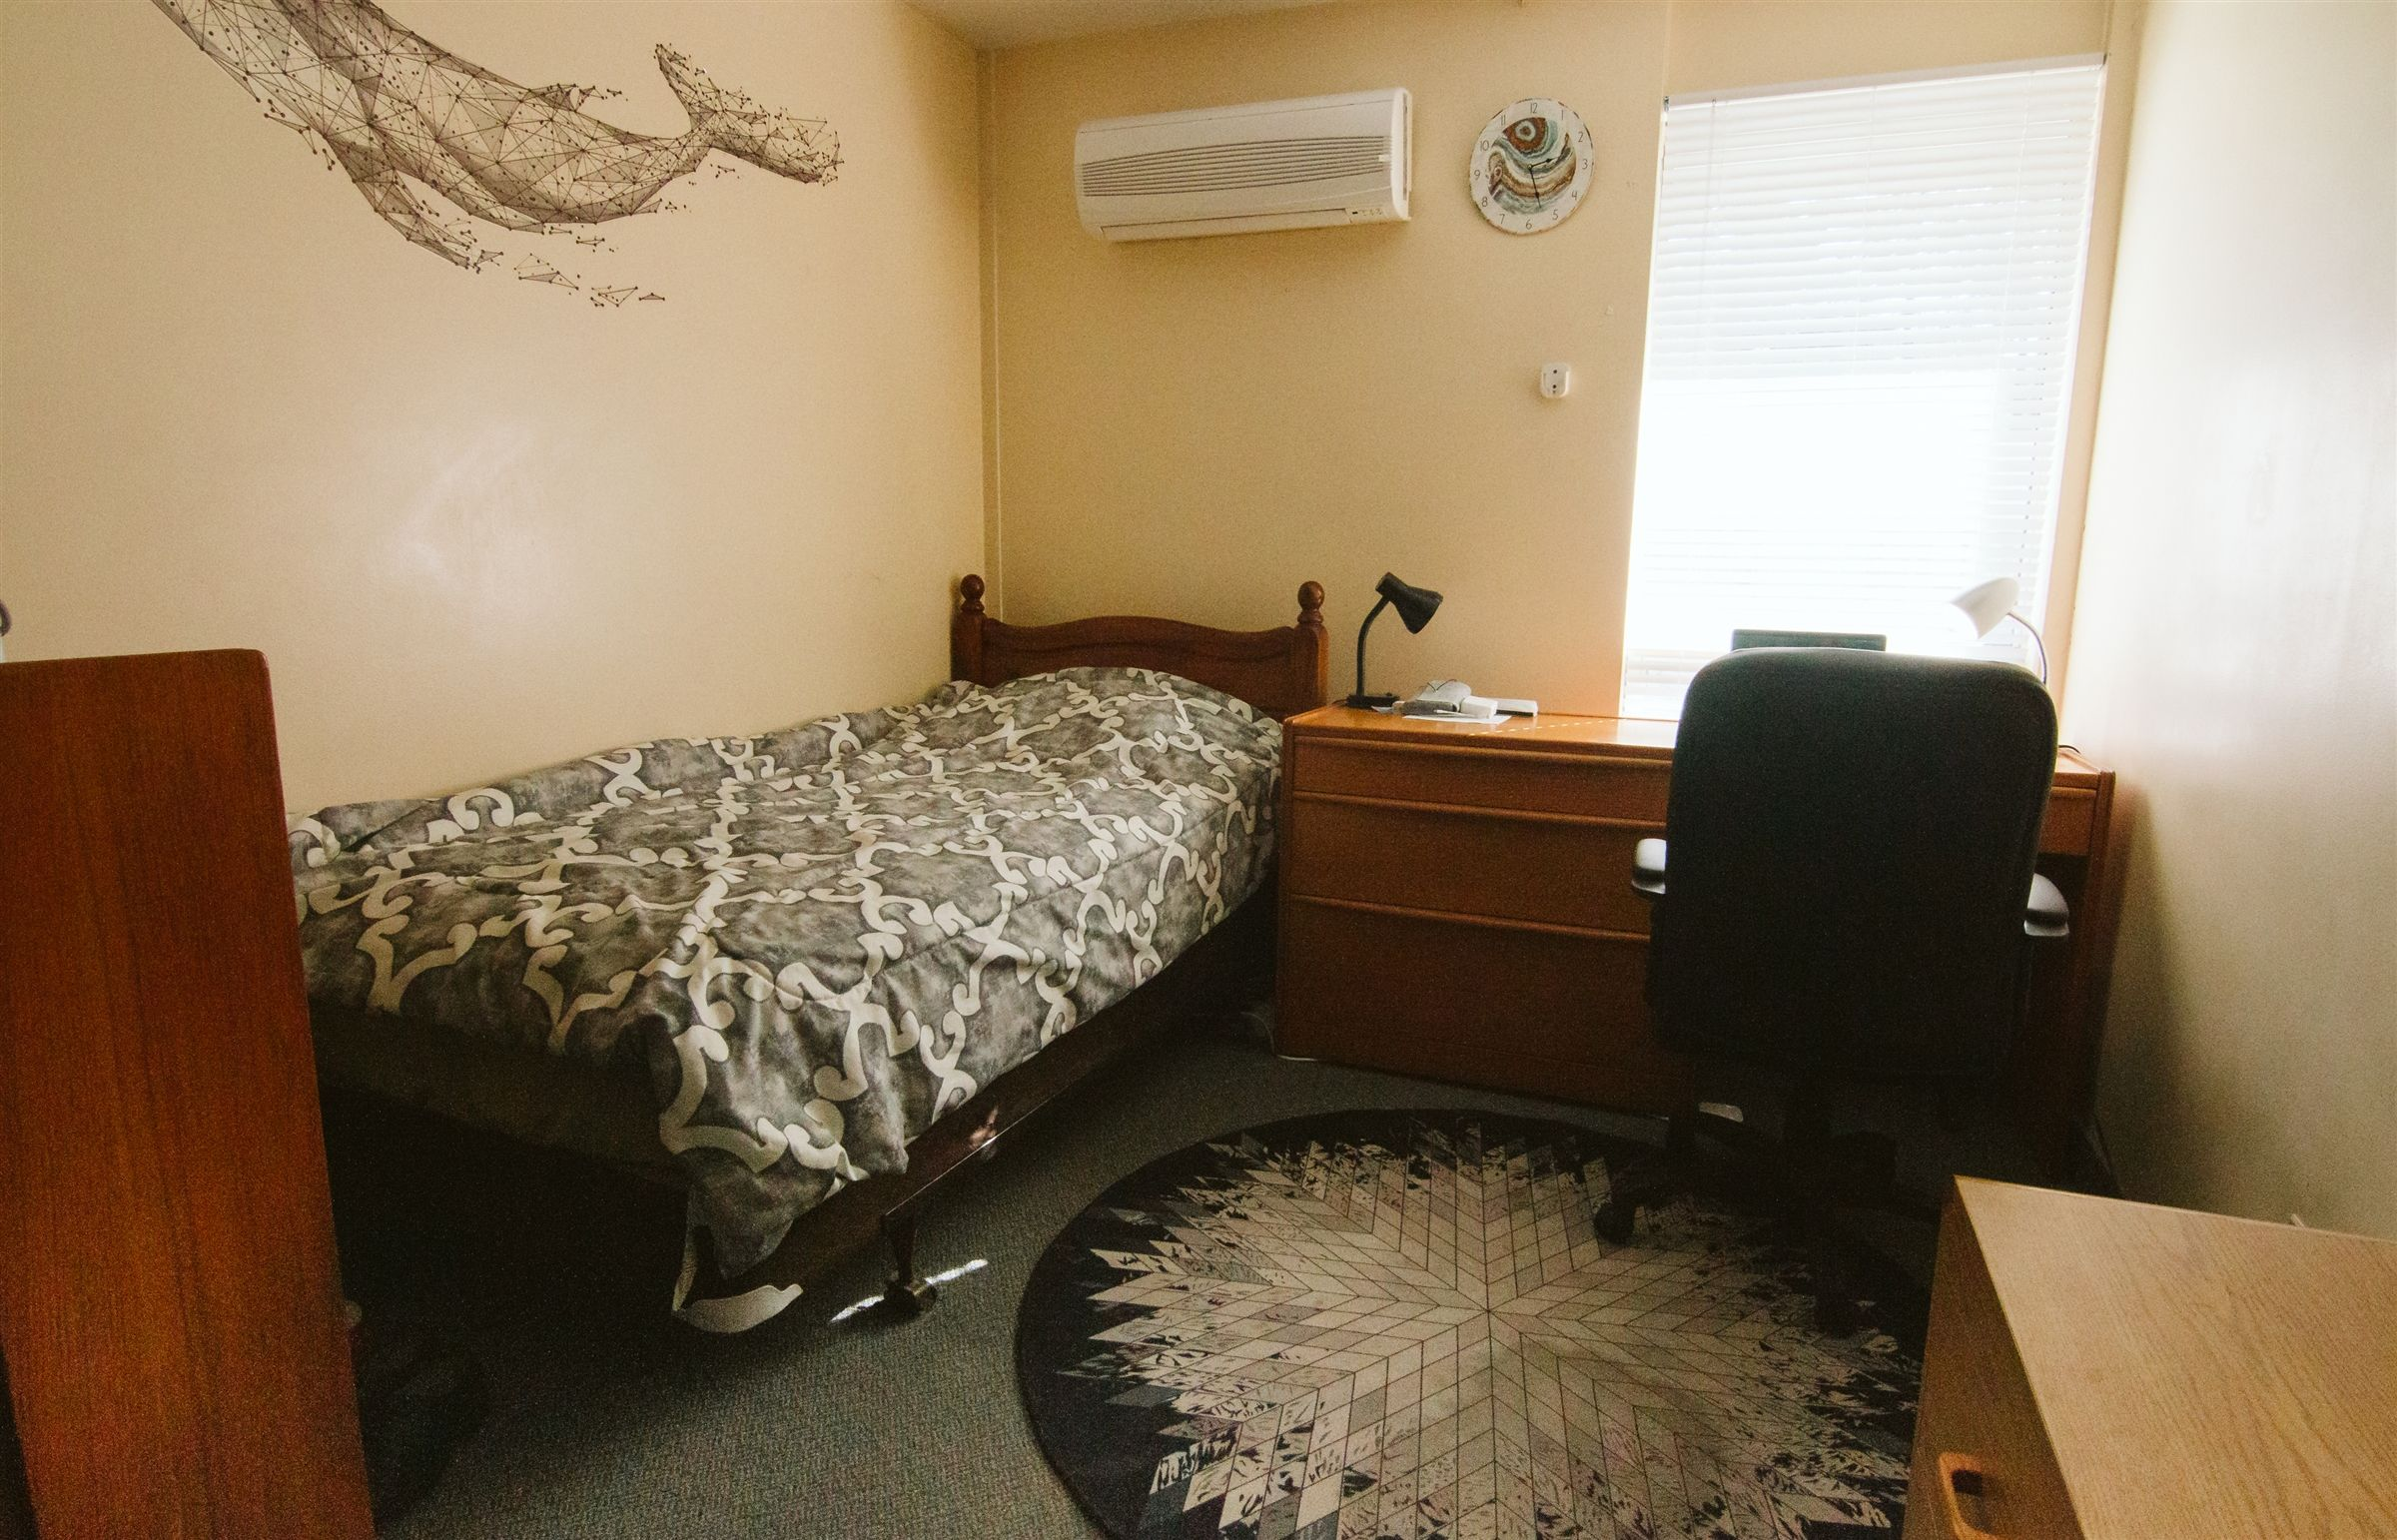 Student accommodations